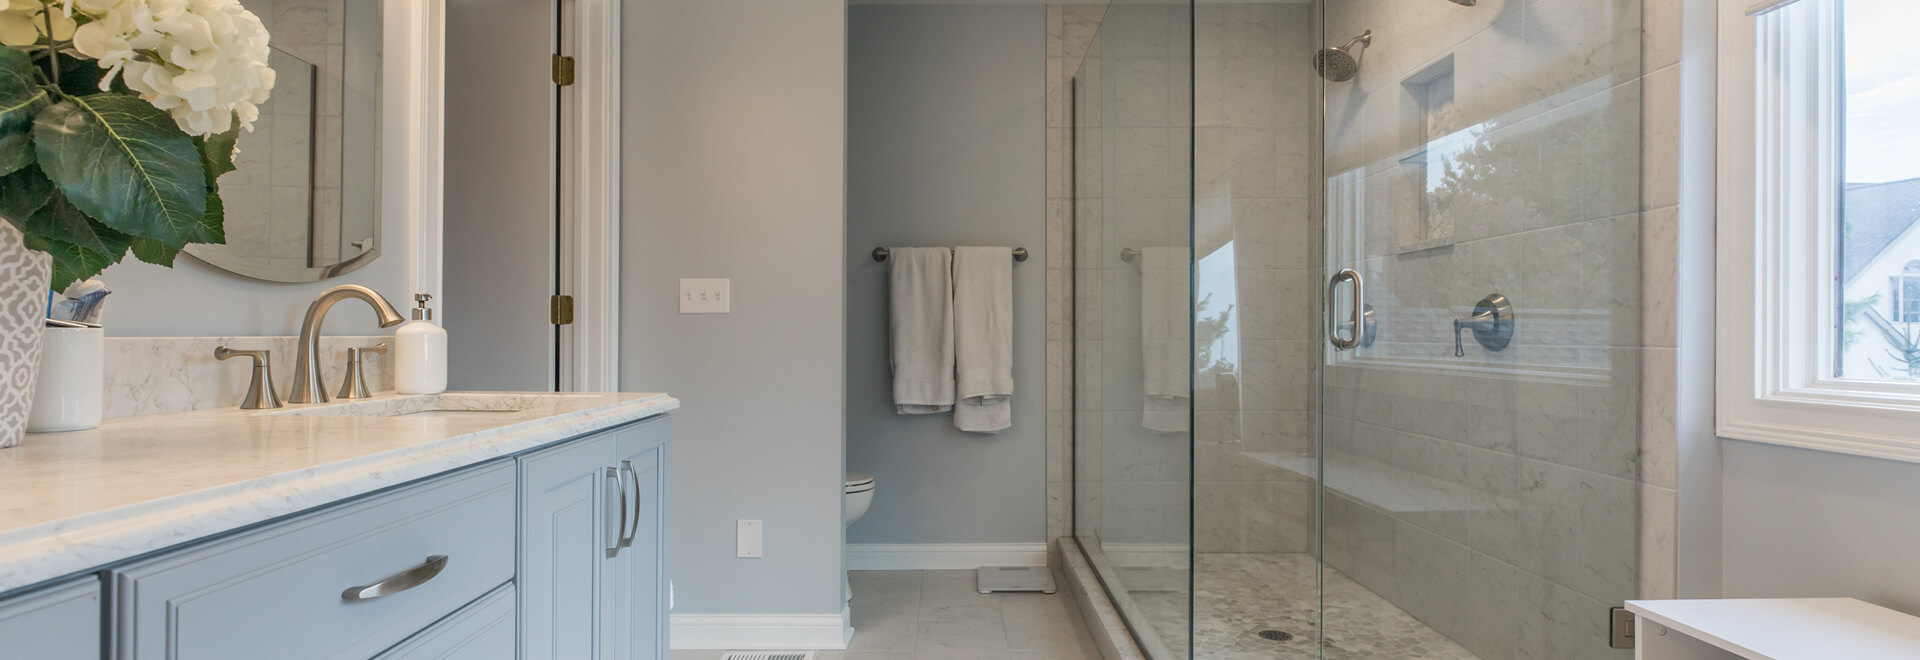 Home Remodeling Companies Near Me  ValEquity Construction Ohio